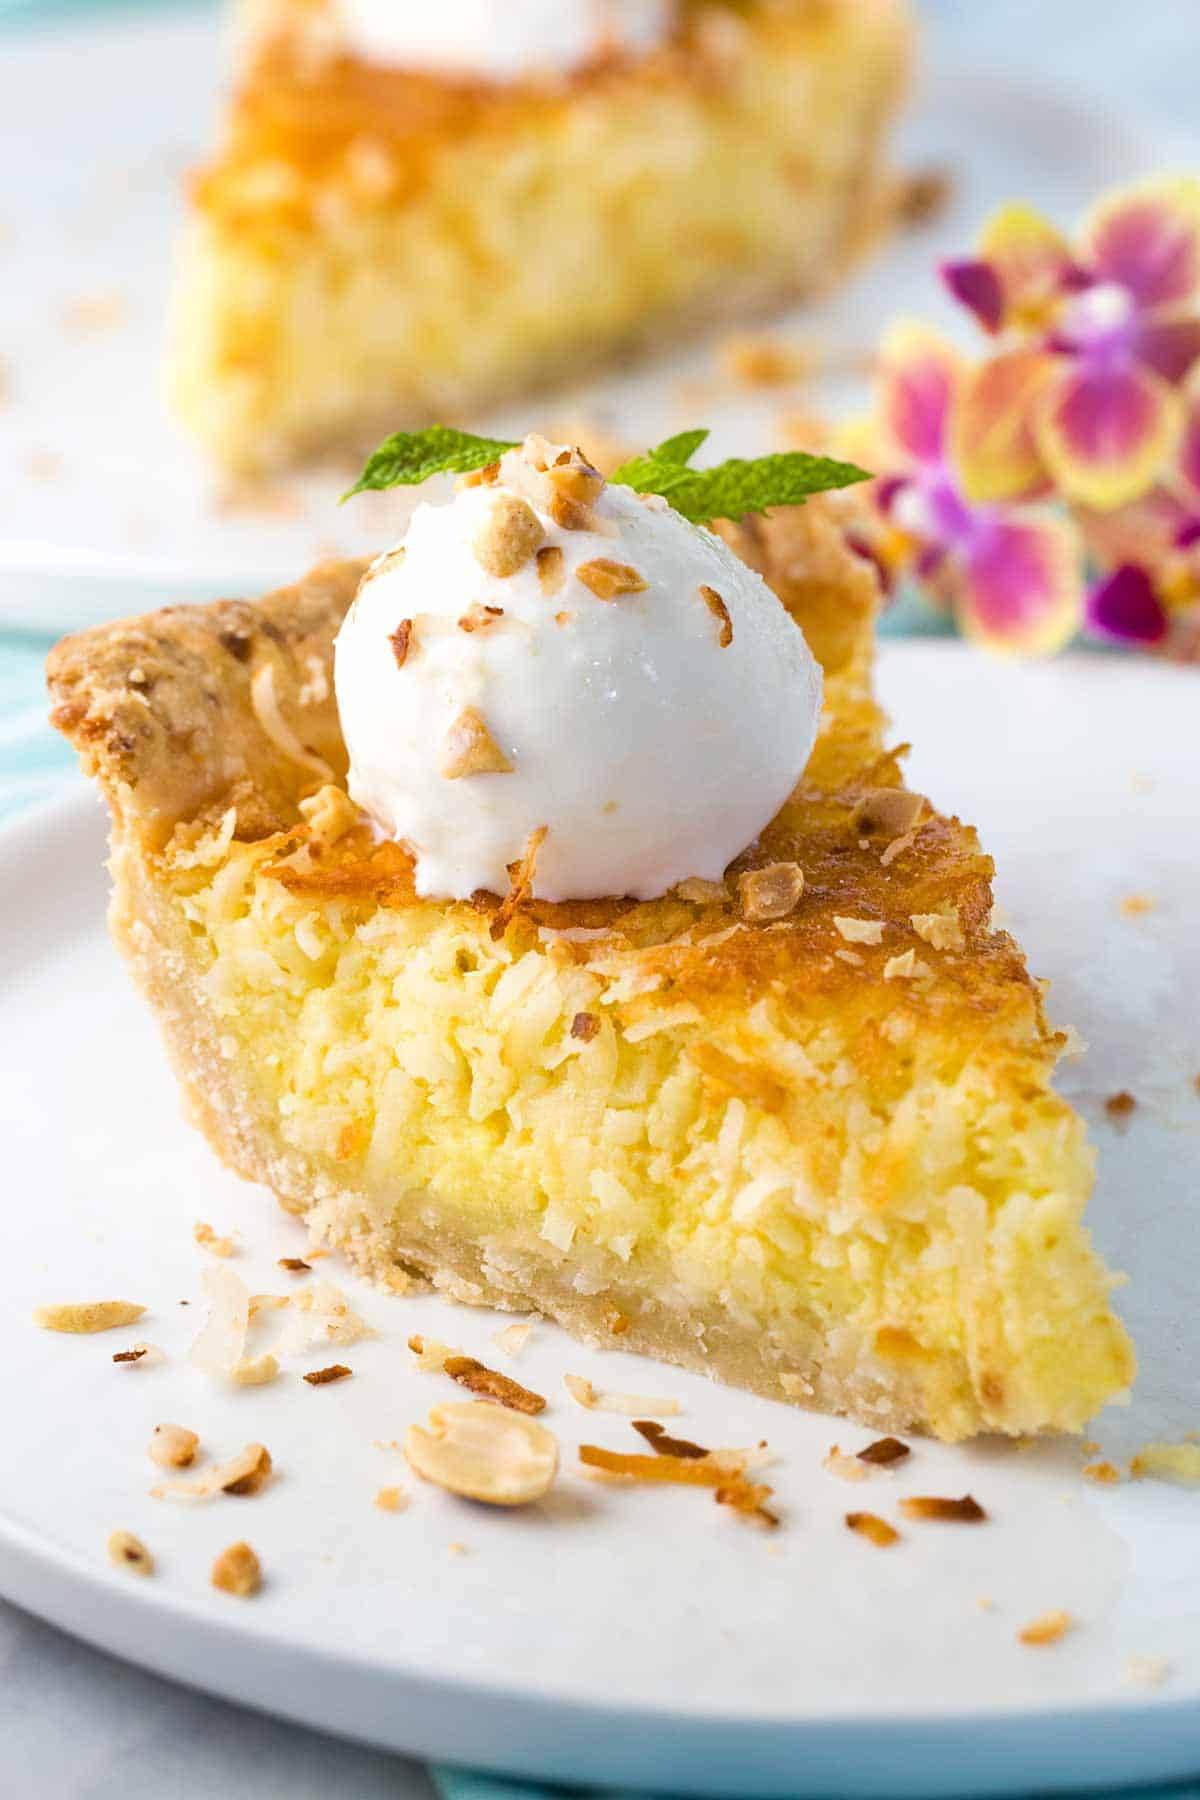 Coconut custard pie recipe with a flaky crust and egg custard filling. This tropical dessert is best served warm with a scoop of vanilla bean ice cream.